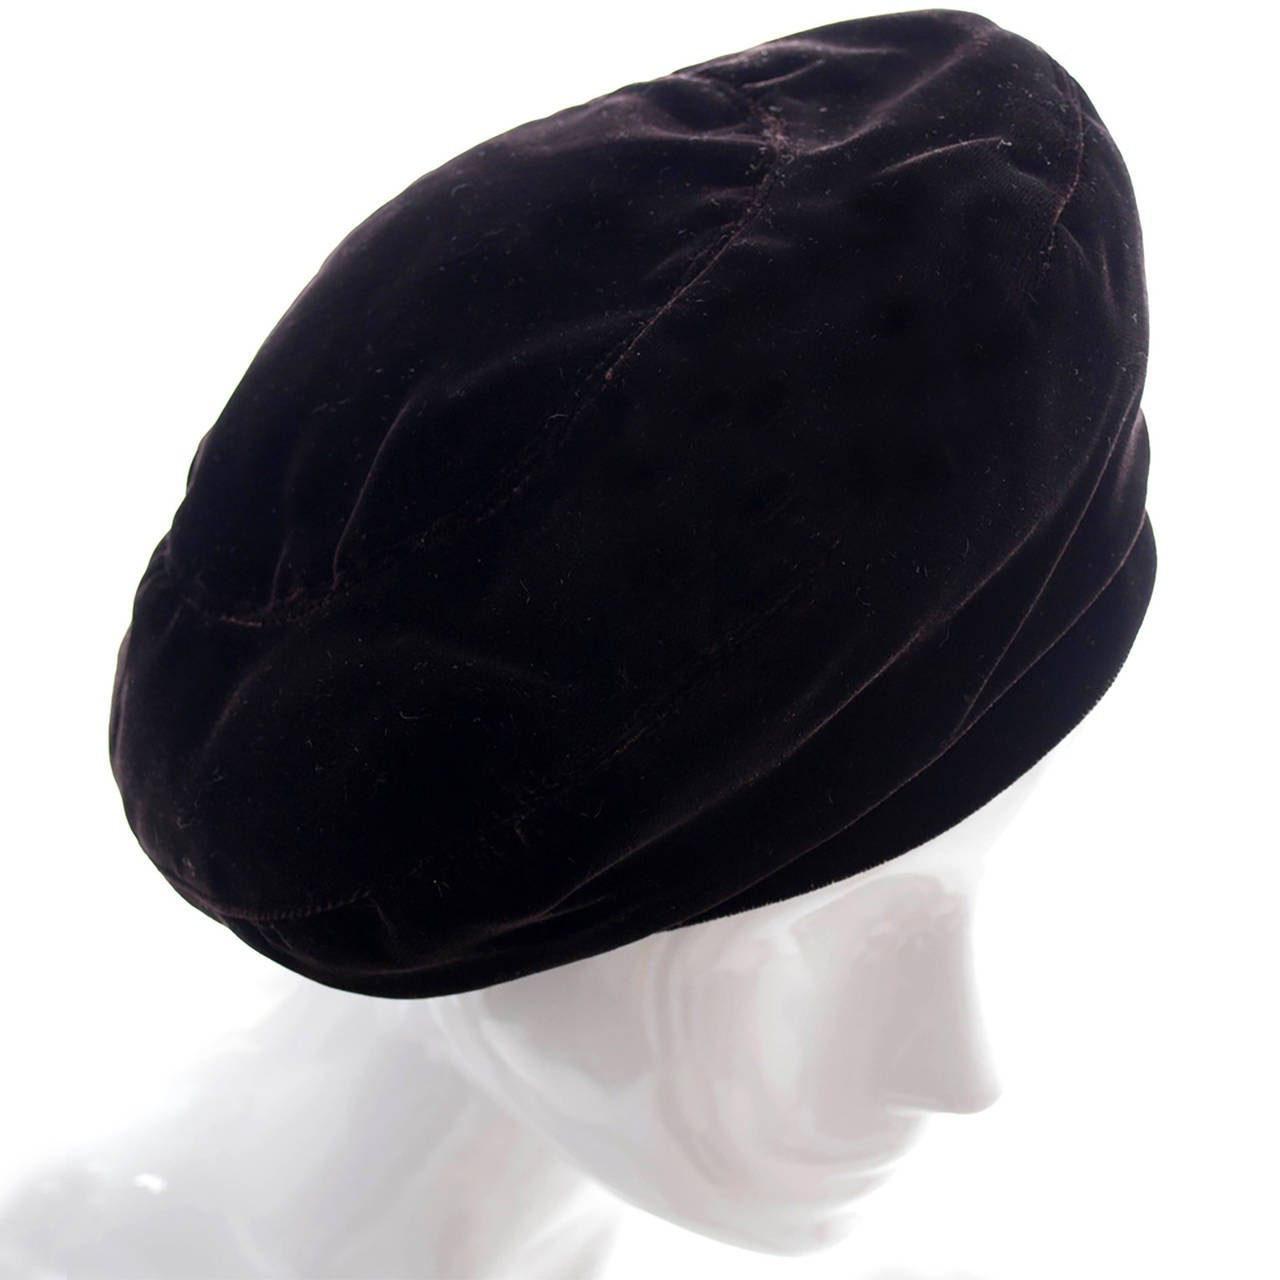 YSL Vintage Beret Hat Yves Saint Laurent Rive Gauche Chocolate Brown Velvet 2